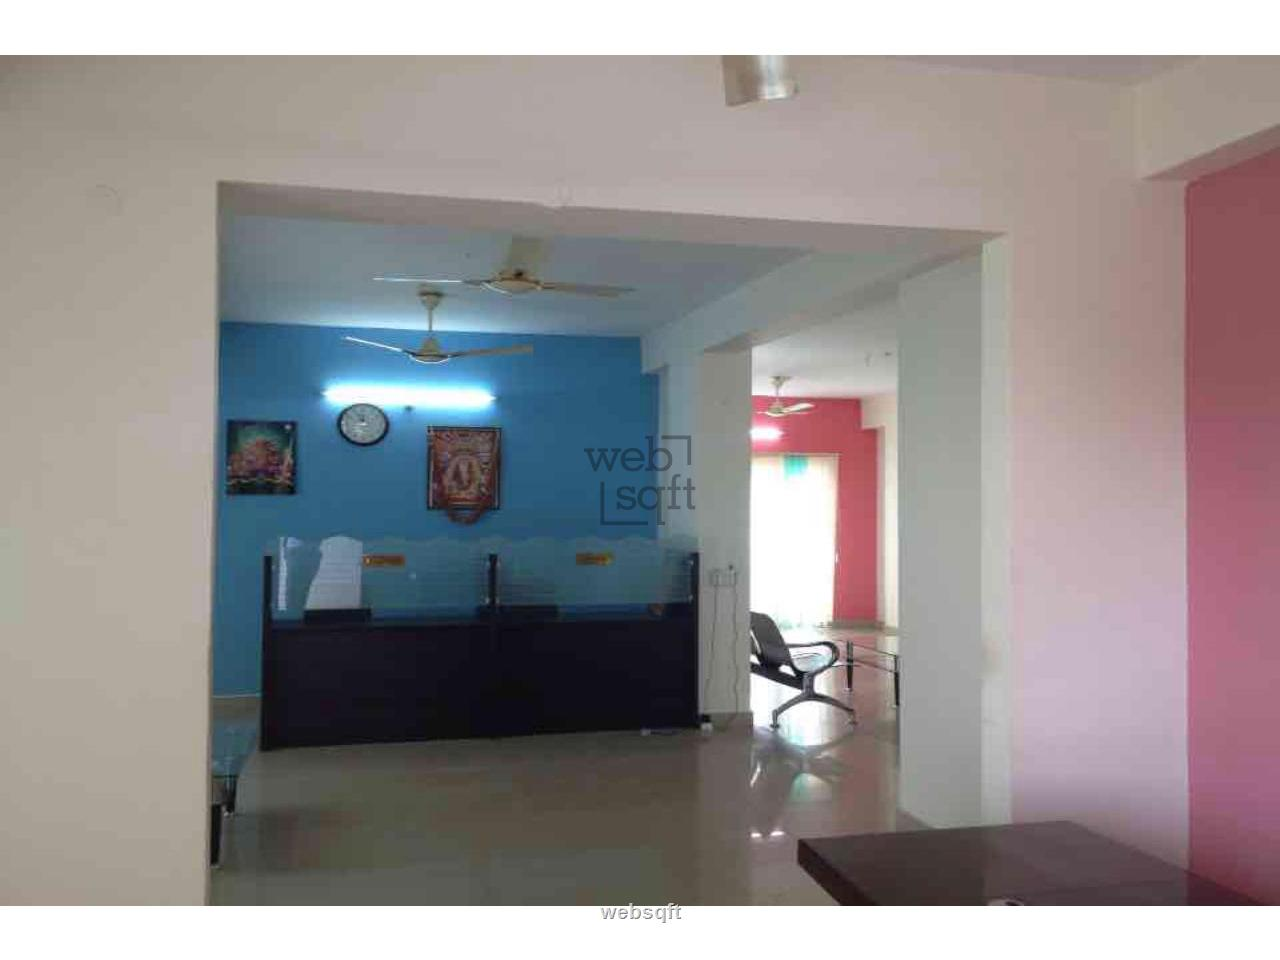 Websqft - Commercial Office Space - Property for Sale - in 2200Sq-ft/Ameerpet at Rs 9000200